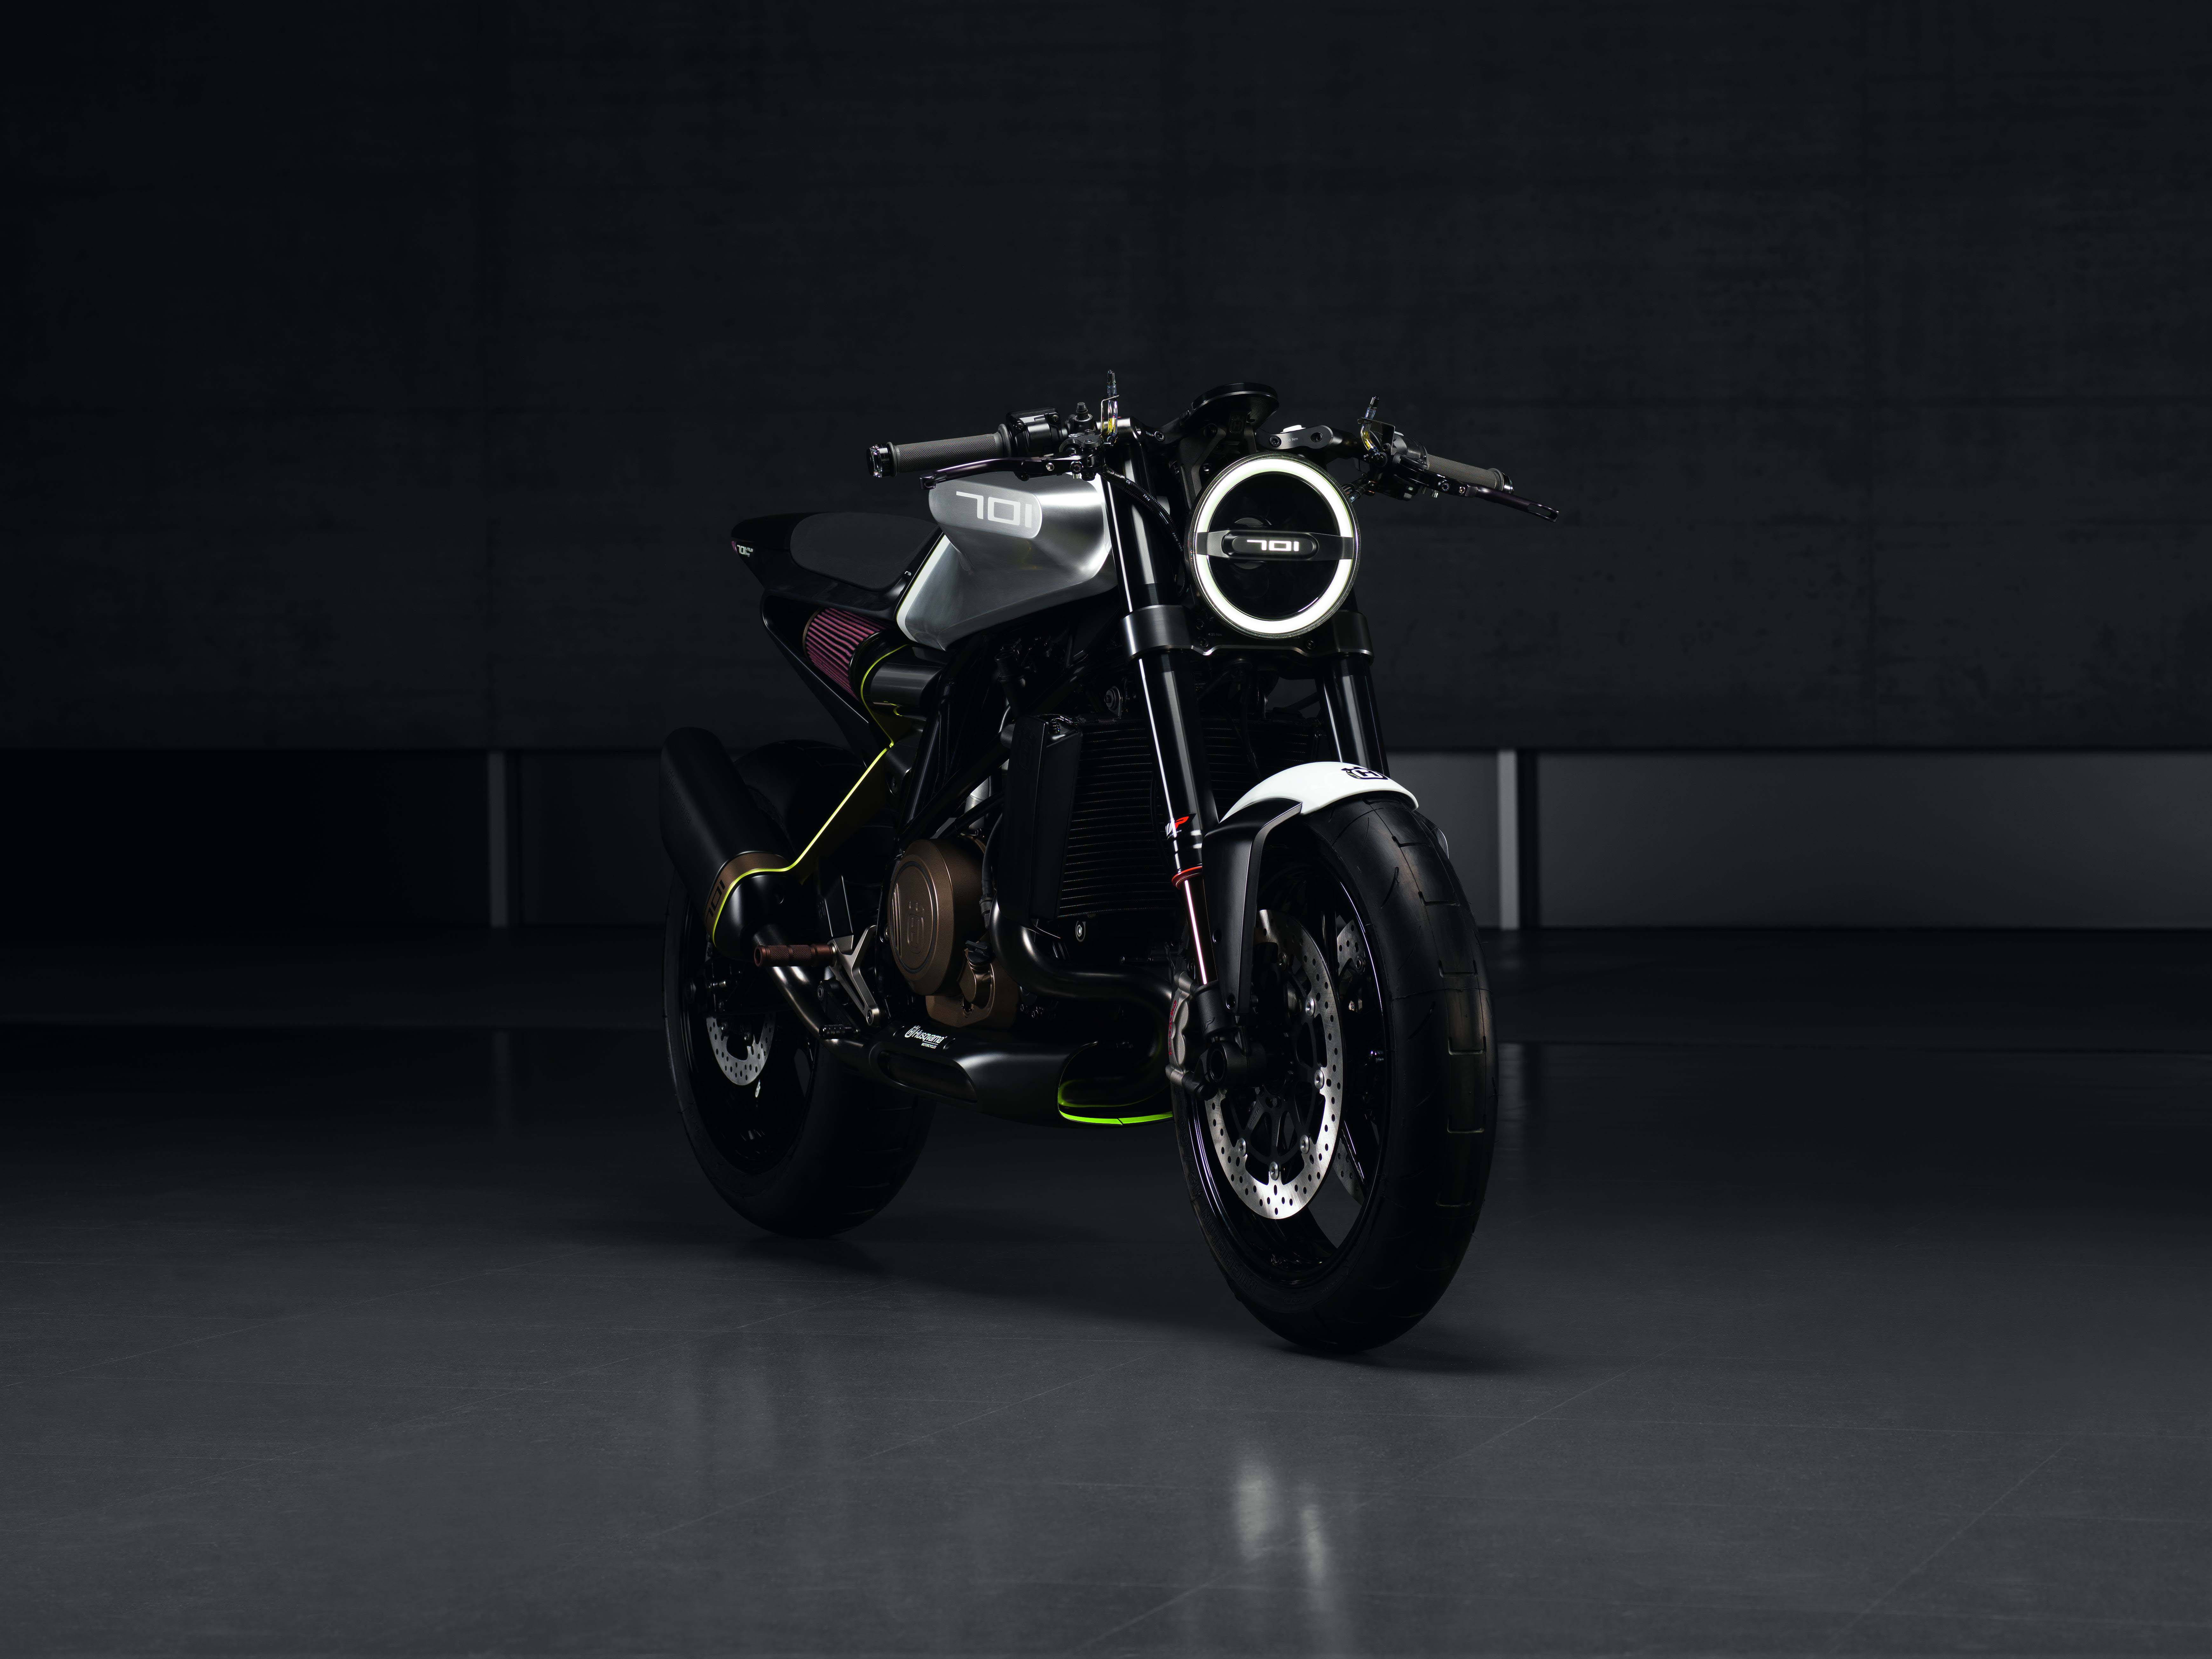 husqvarna vitpilen 701 one hot cafe racer from the future. Black Bedroom Furniture Sets. Home Design Ideas